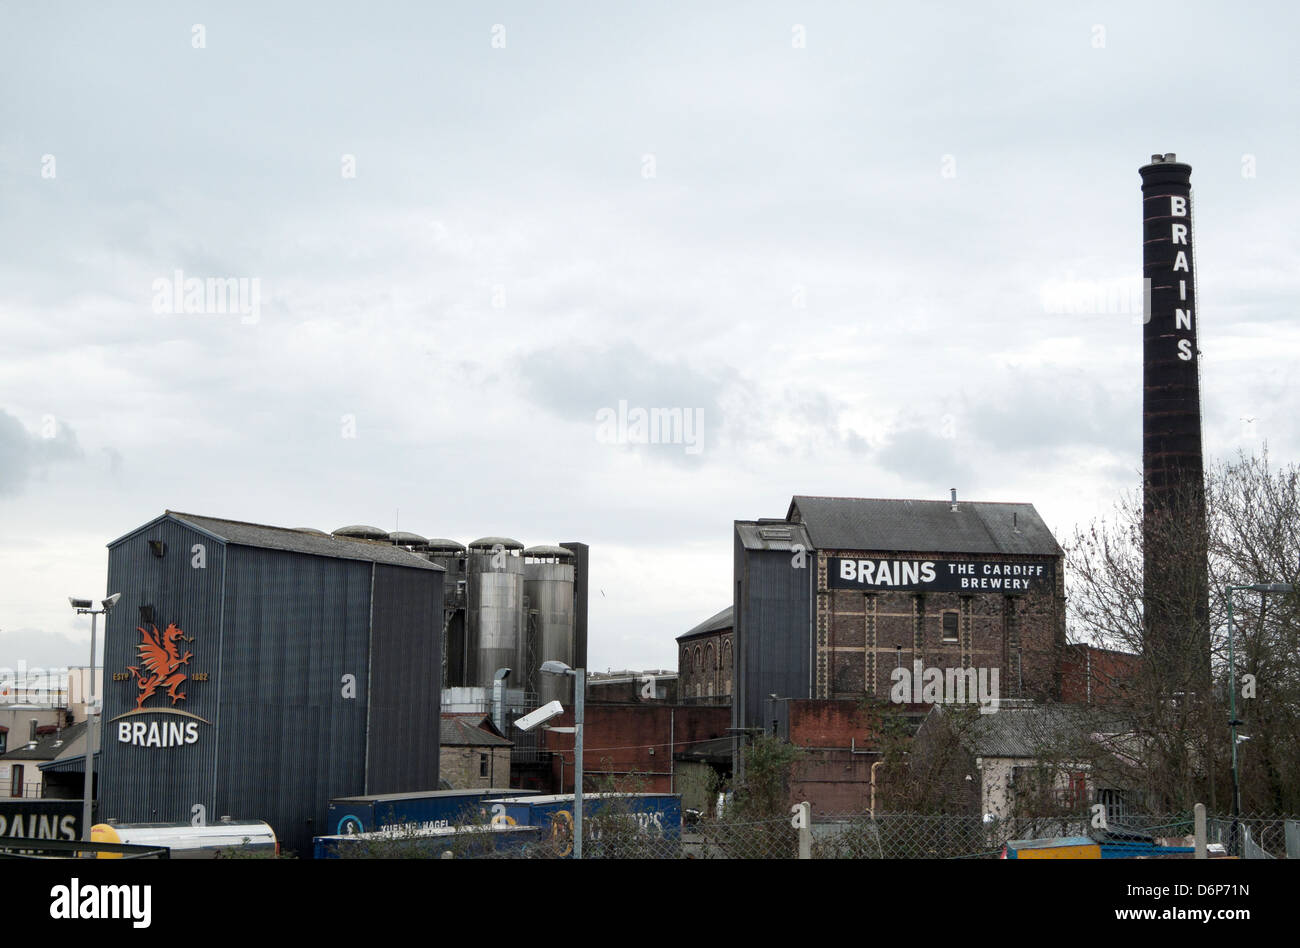 A view of Brains Brewery buildings Cardiff City, Wales, UK - Stock Image